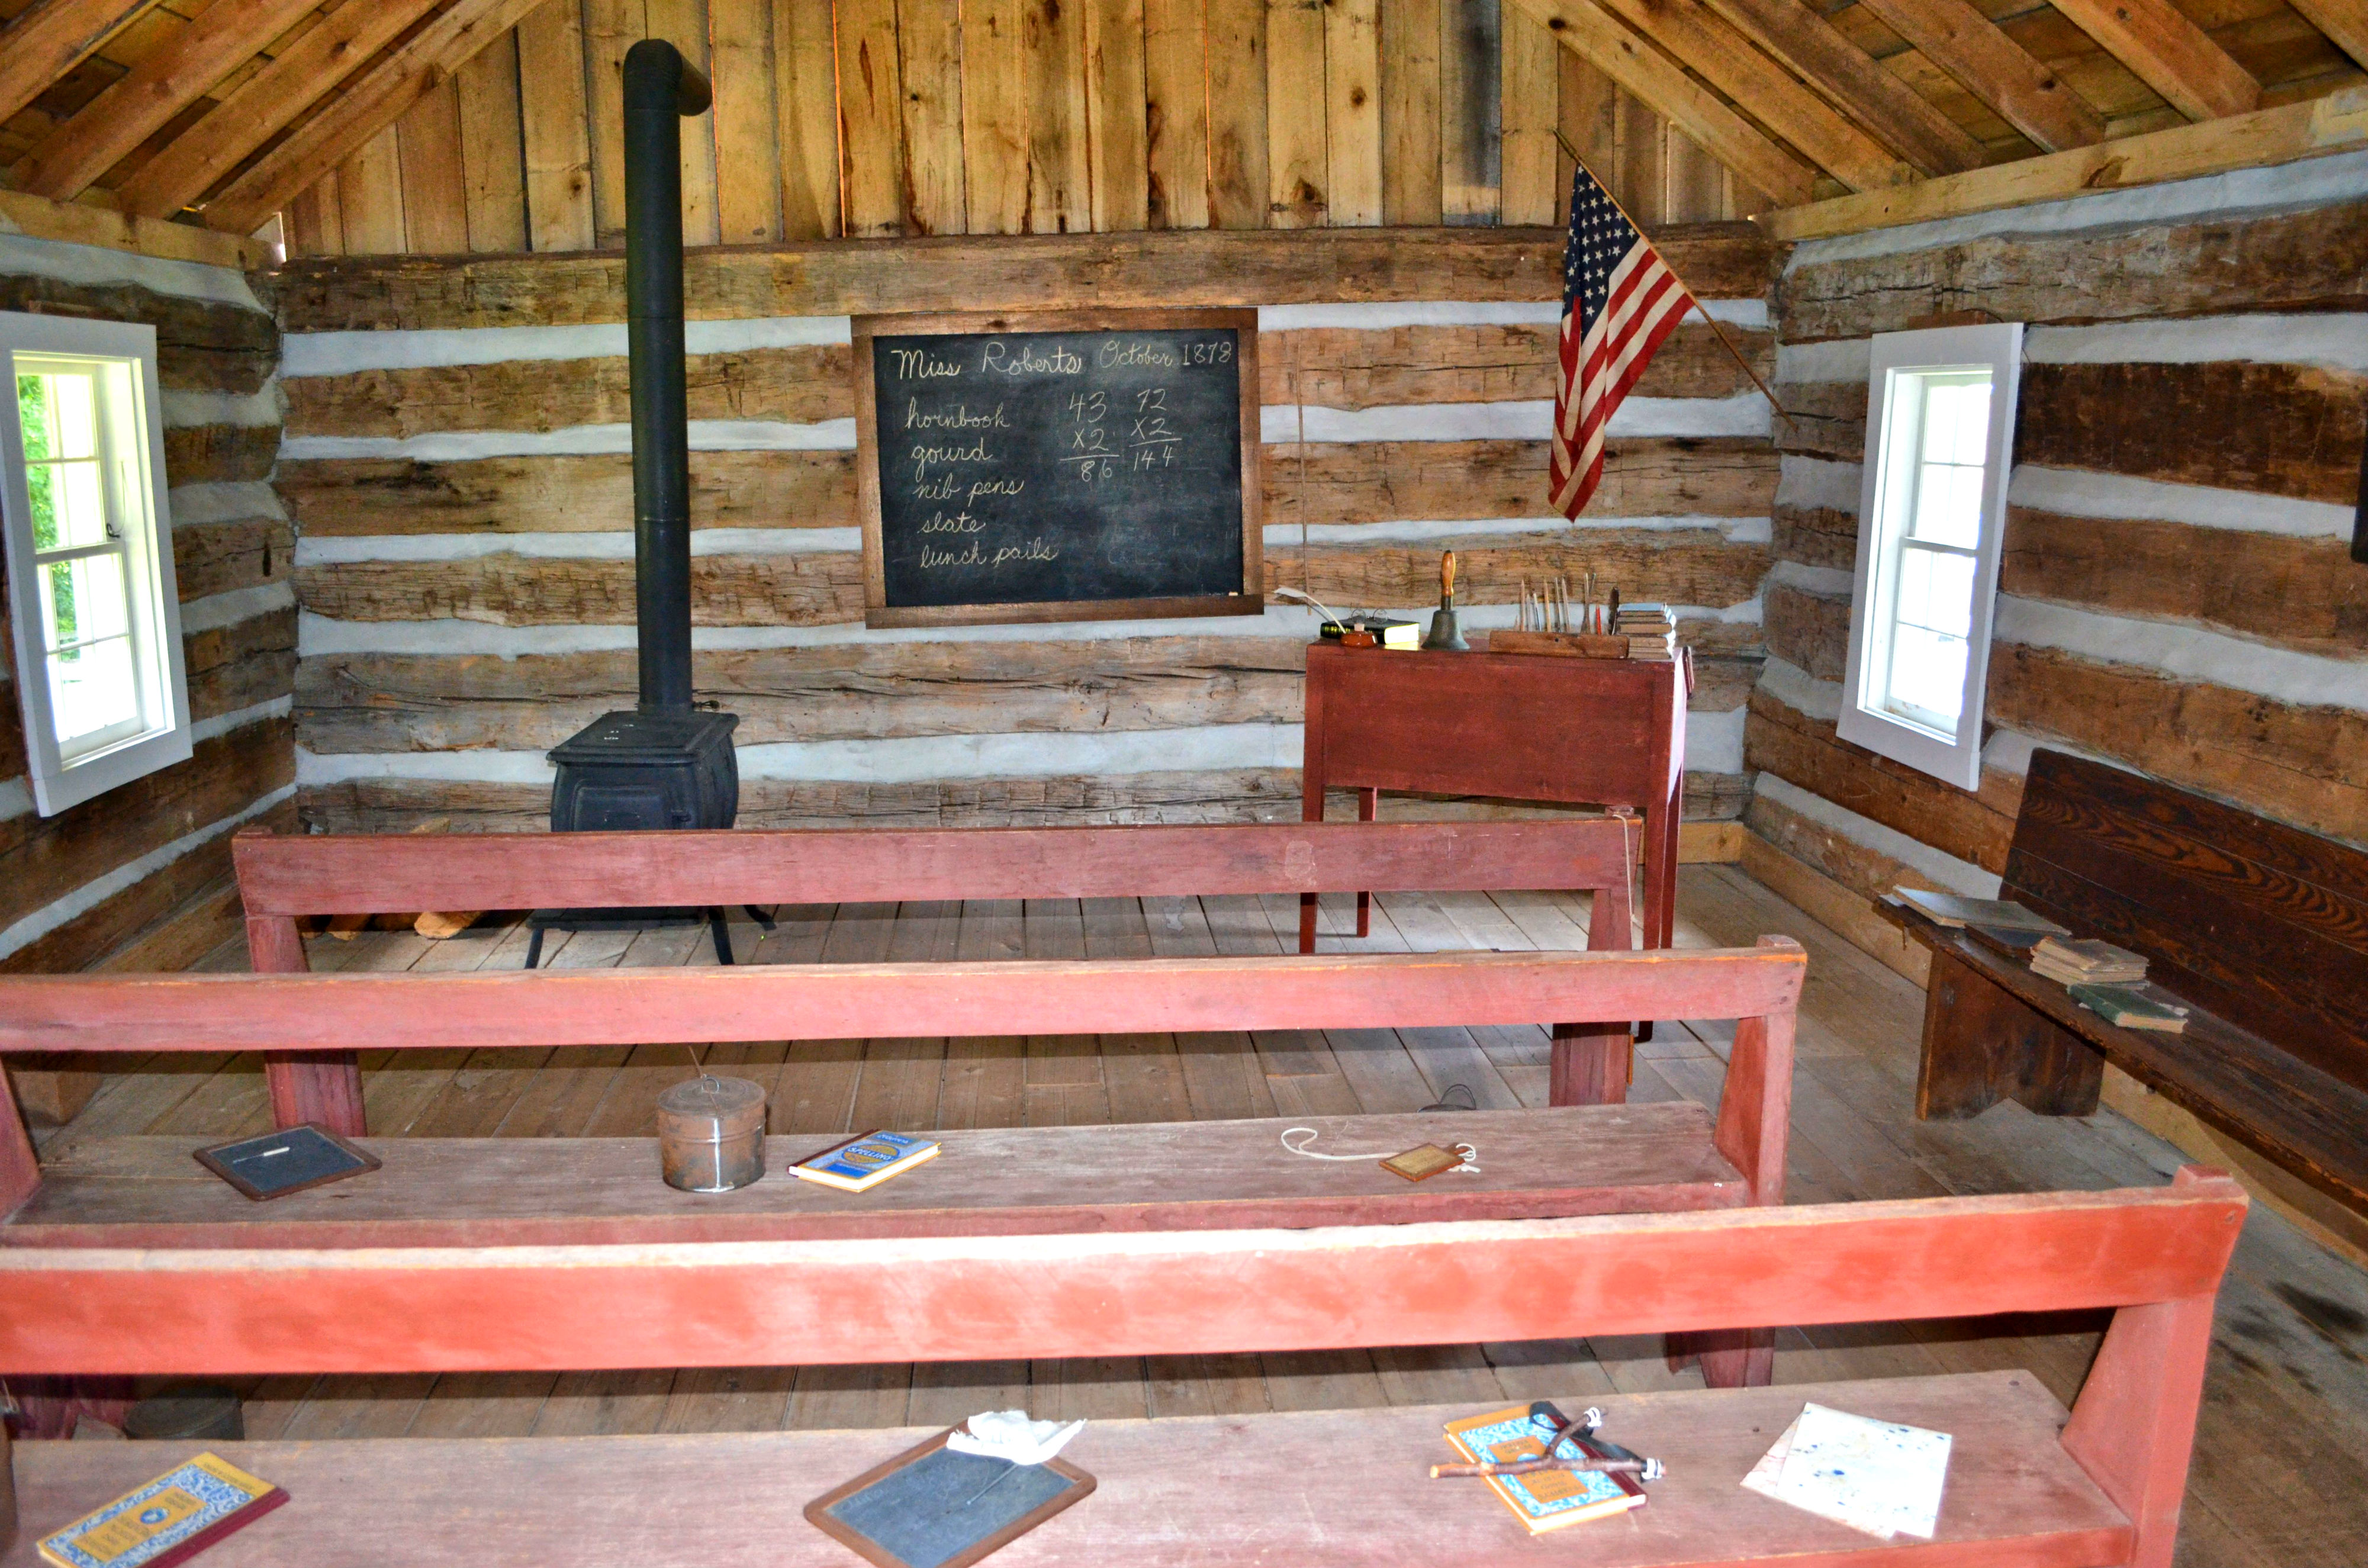 Interior of the replica one room school house.